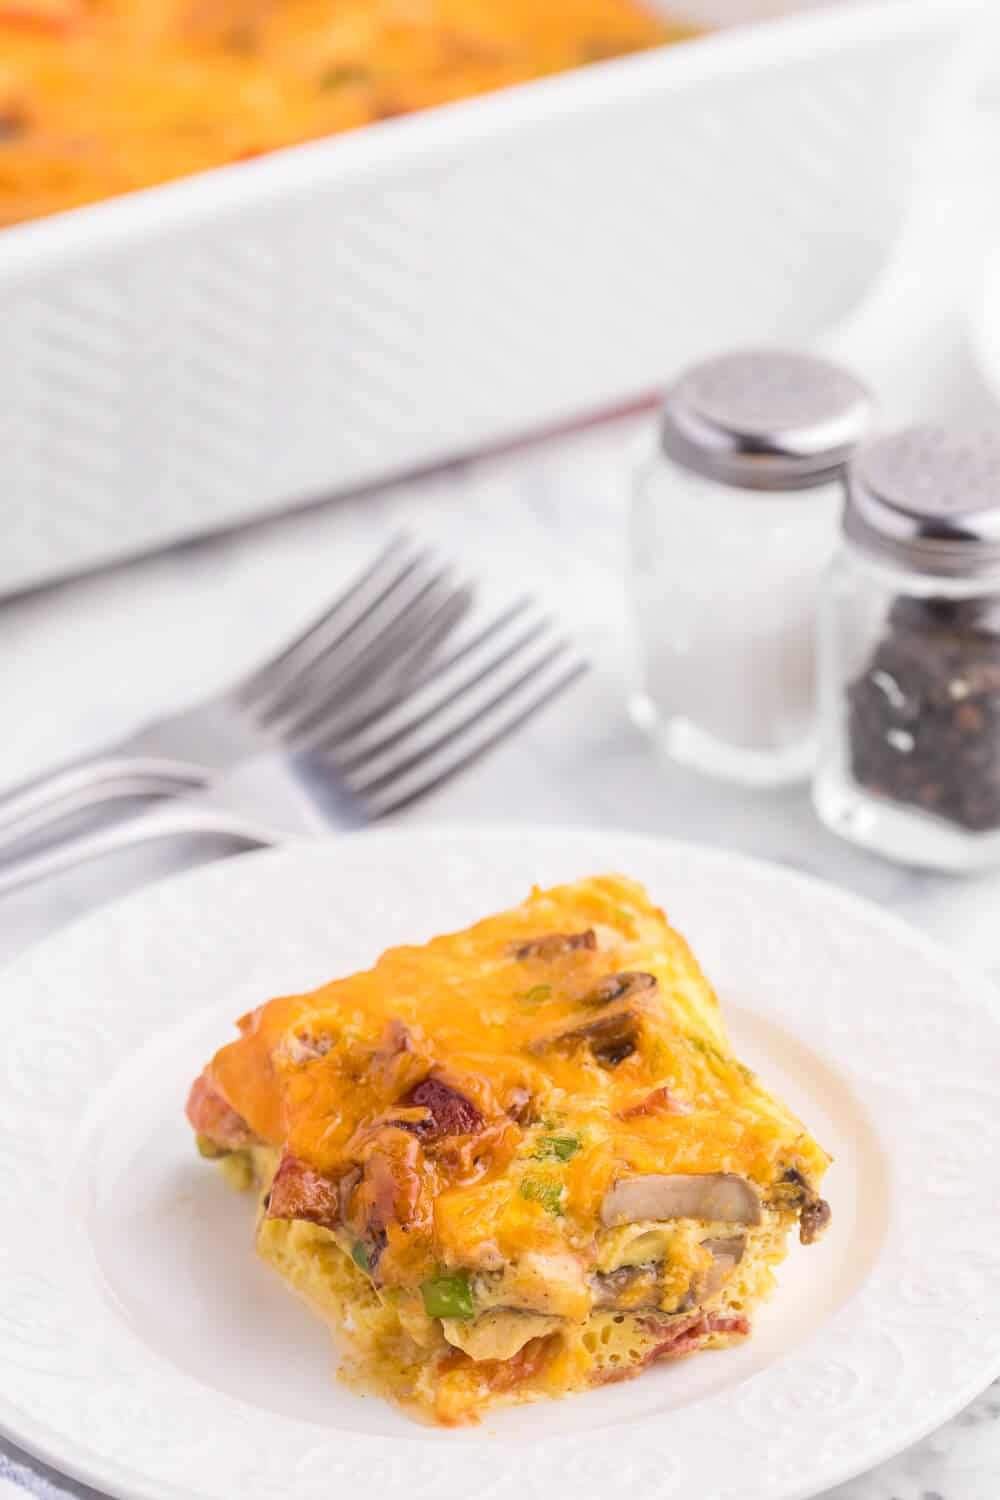 Crustless Bacon and Cheese Quiche - Rich, creamy eggs with bacon and cheese are a fantastic, lower carb option for brunch or dinner. Served with fruit or mixed greens, this is delicious and satisfying, no matter what time of day you make it!